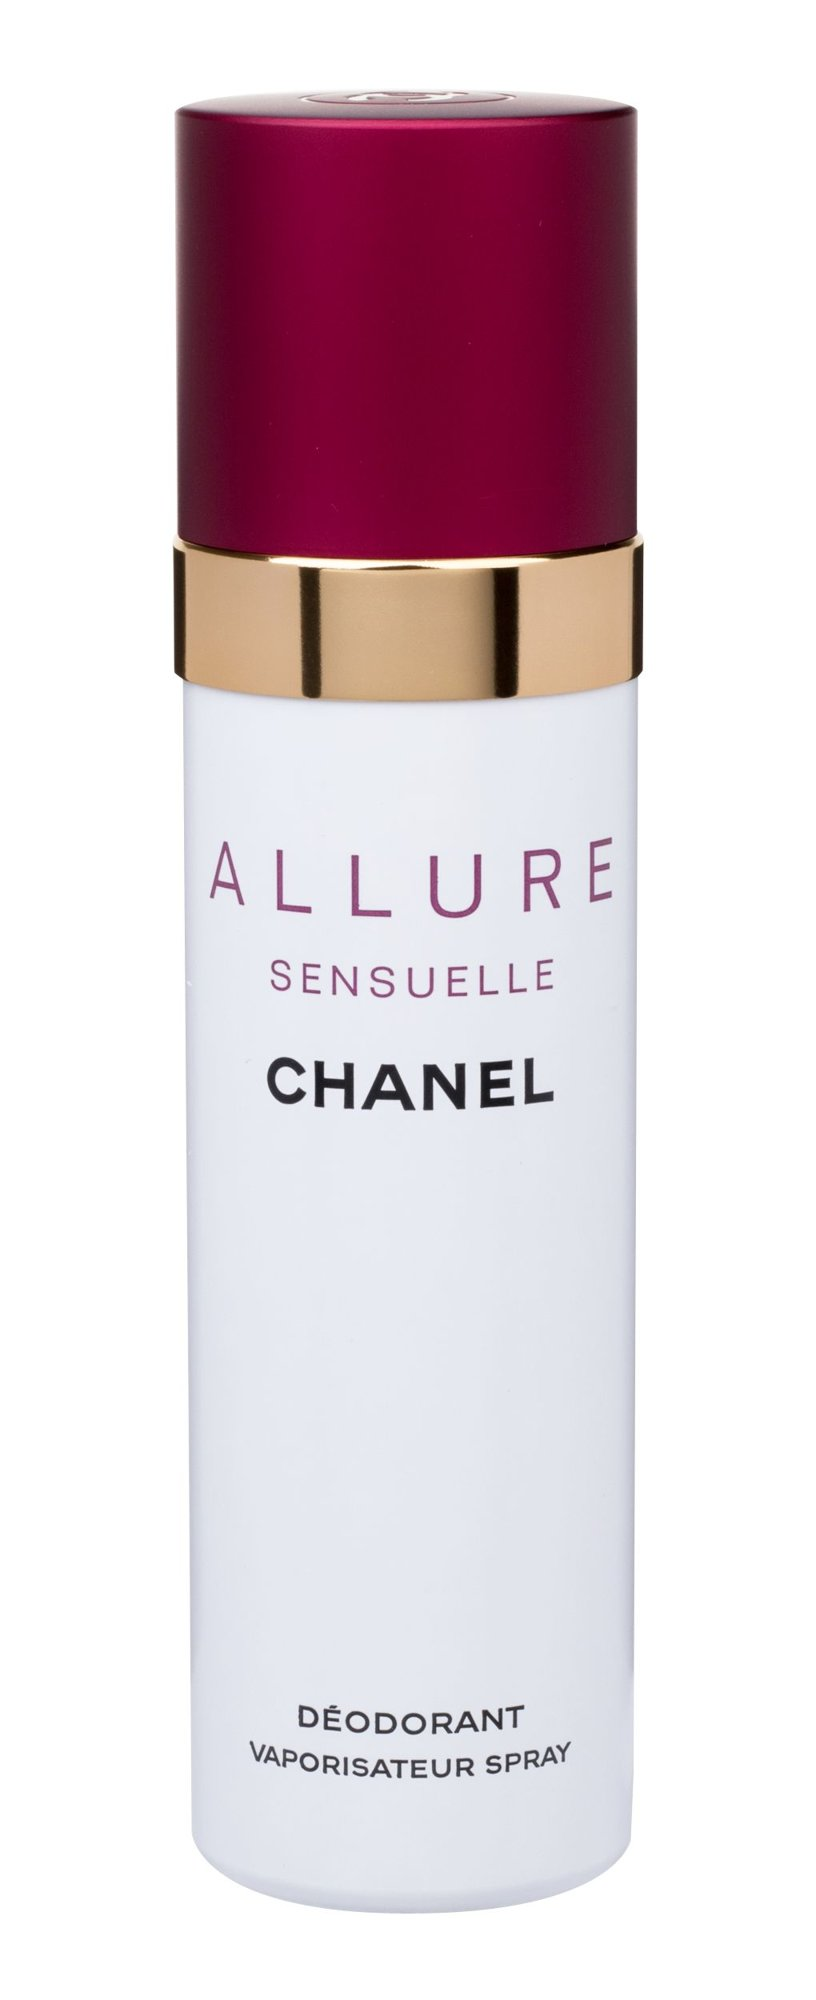 Chanel Allure Sensuelle Deodorant 100ml